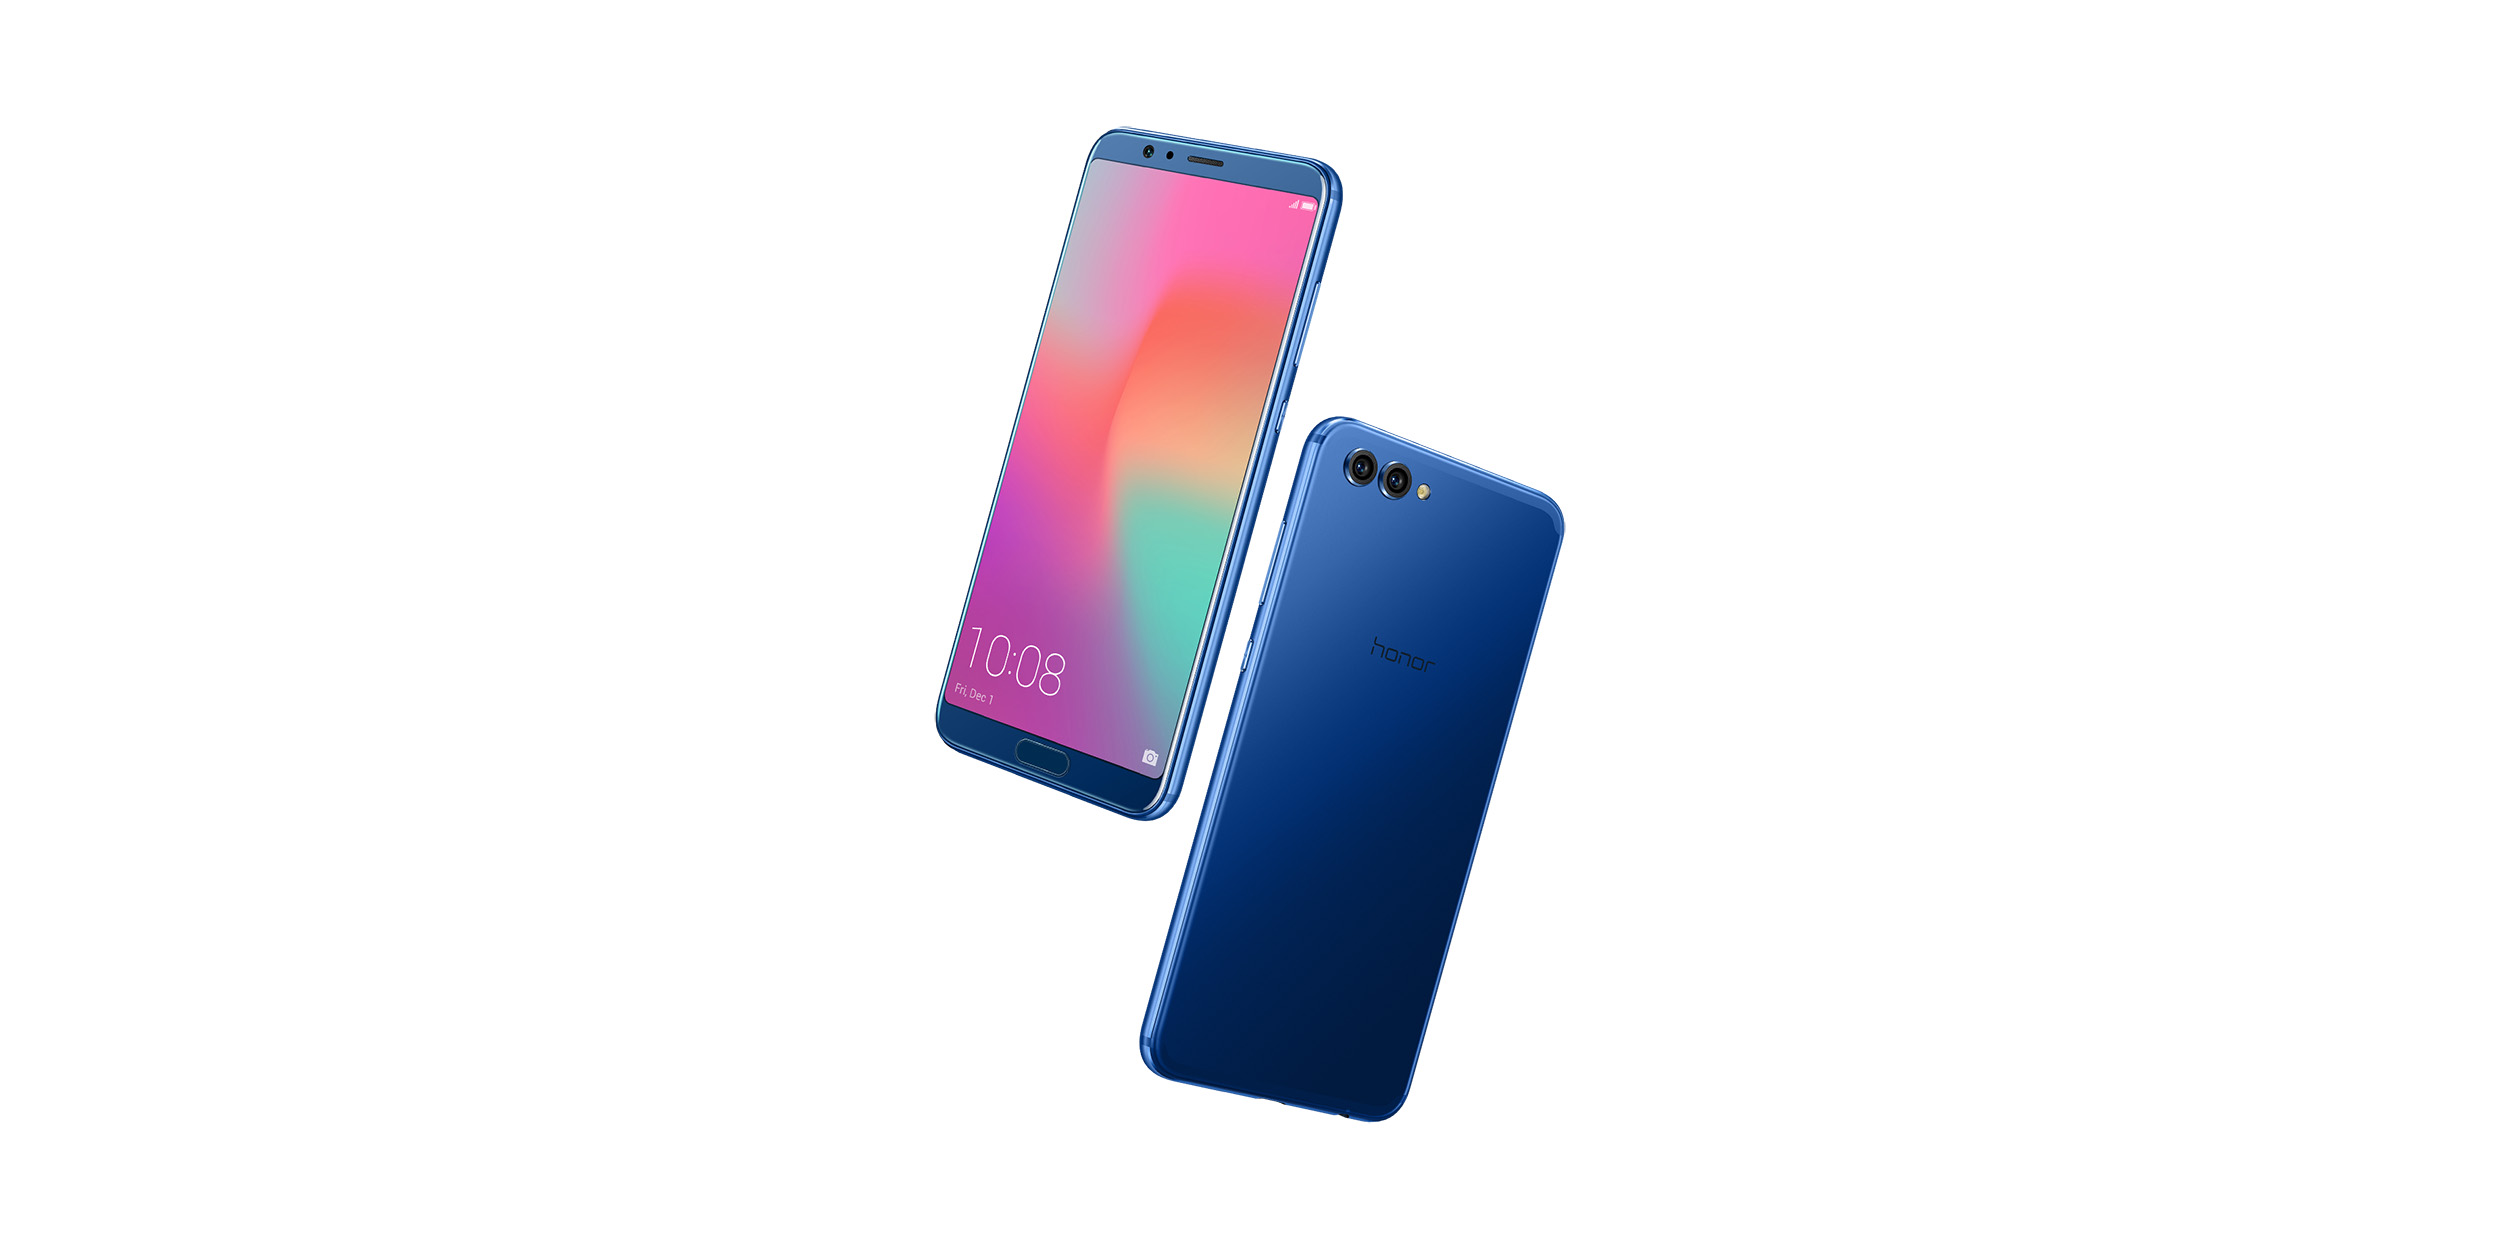 Best affordable Android phones you can buy [April 2018] - 9to5Google